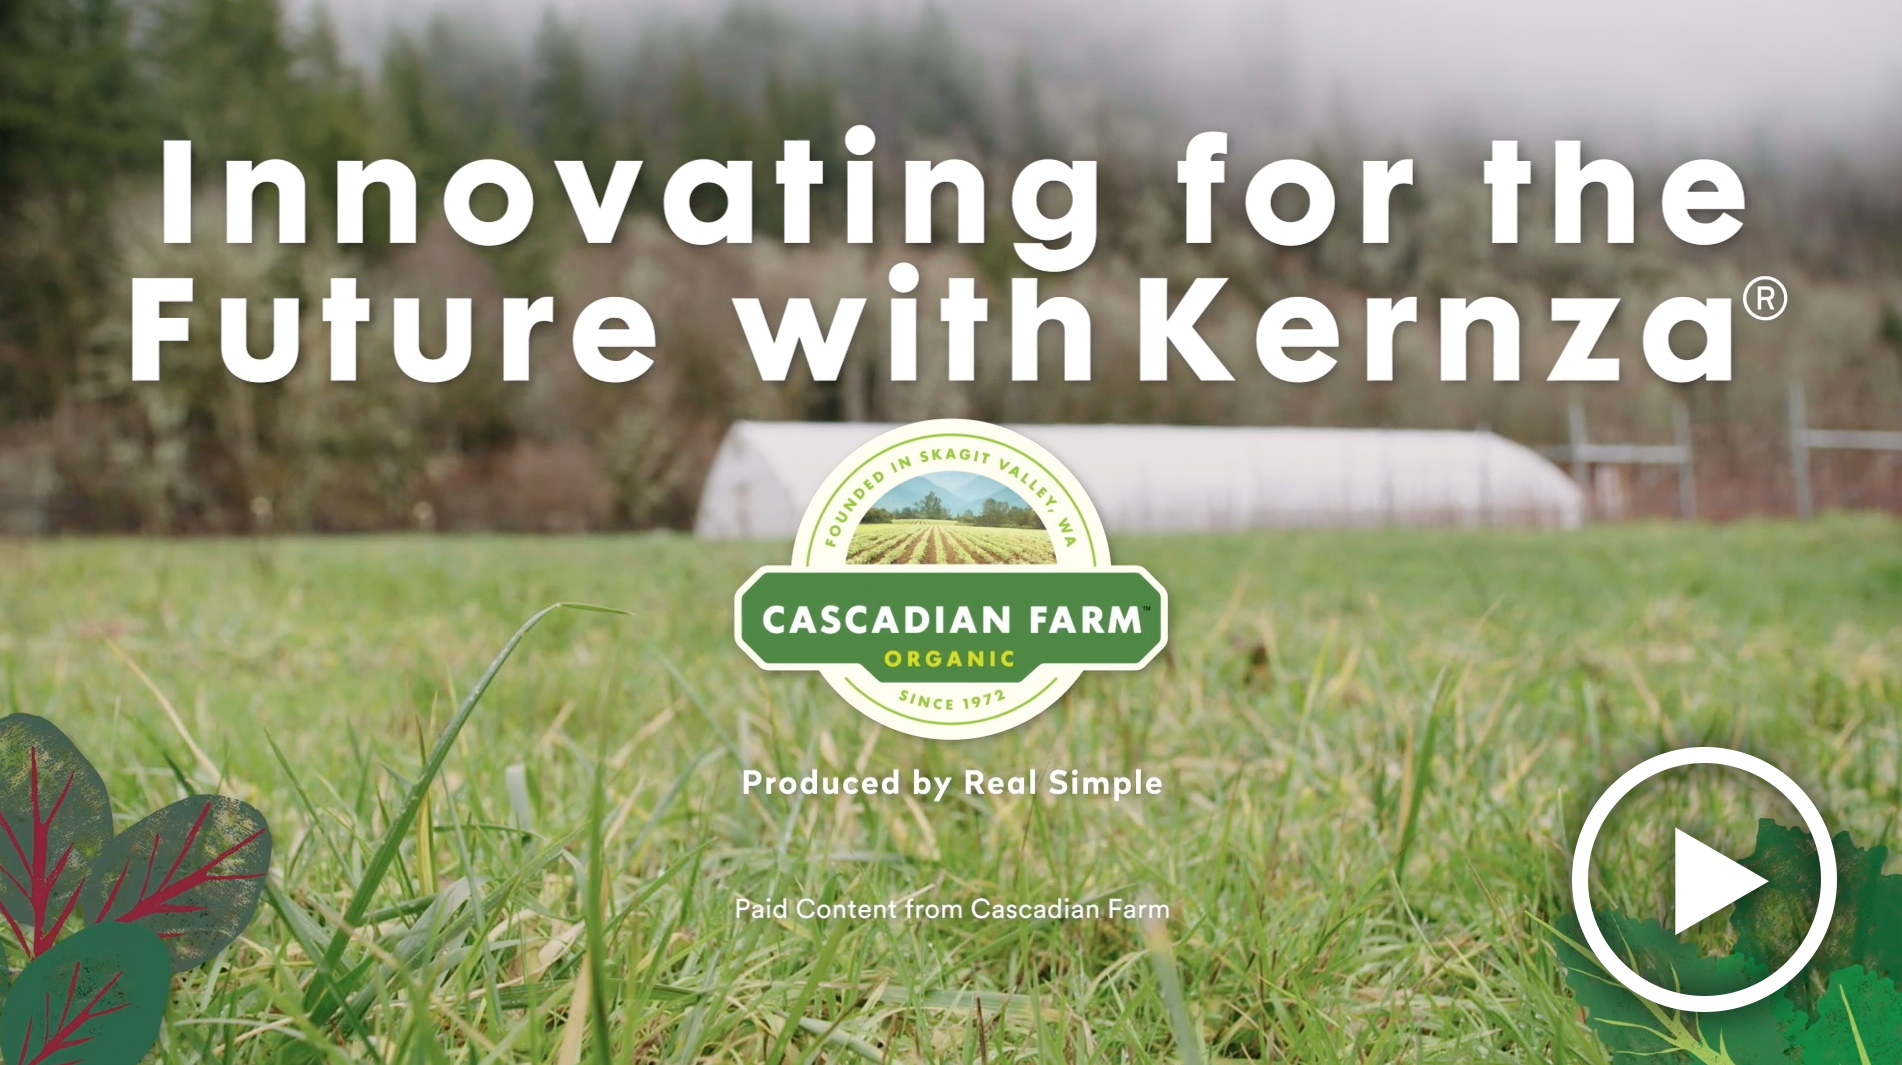 The Magic of Organic: Innovating for the Future with Kernza®